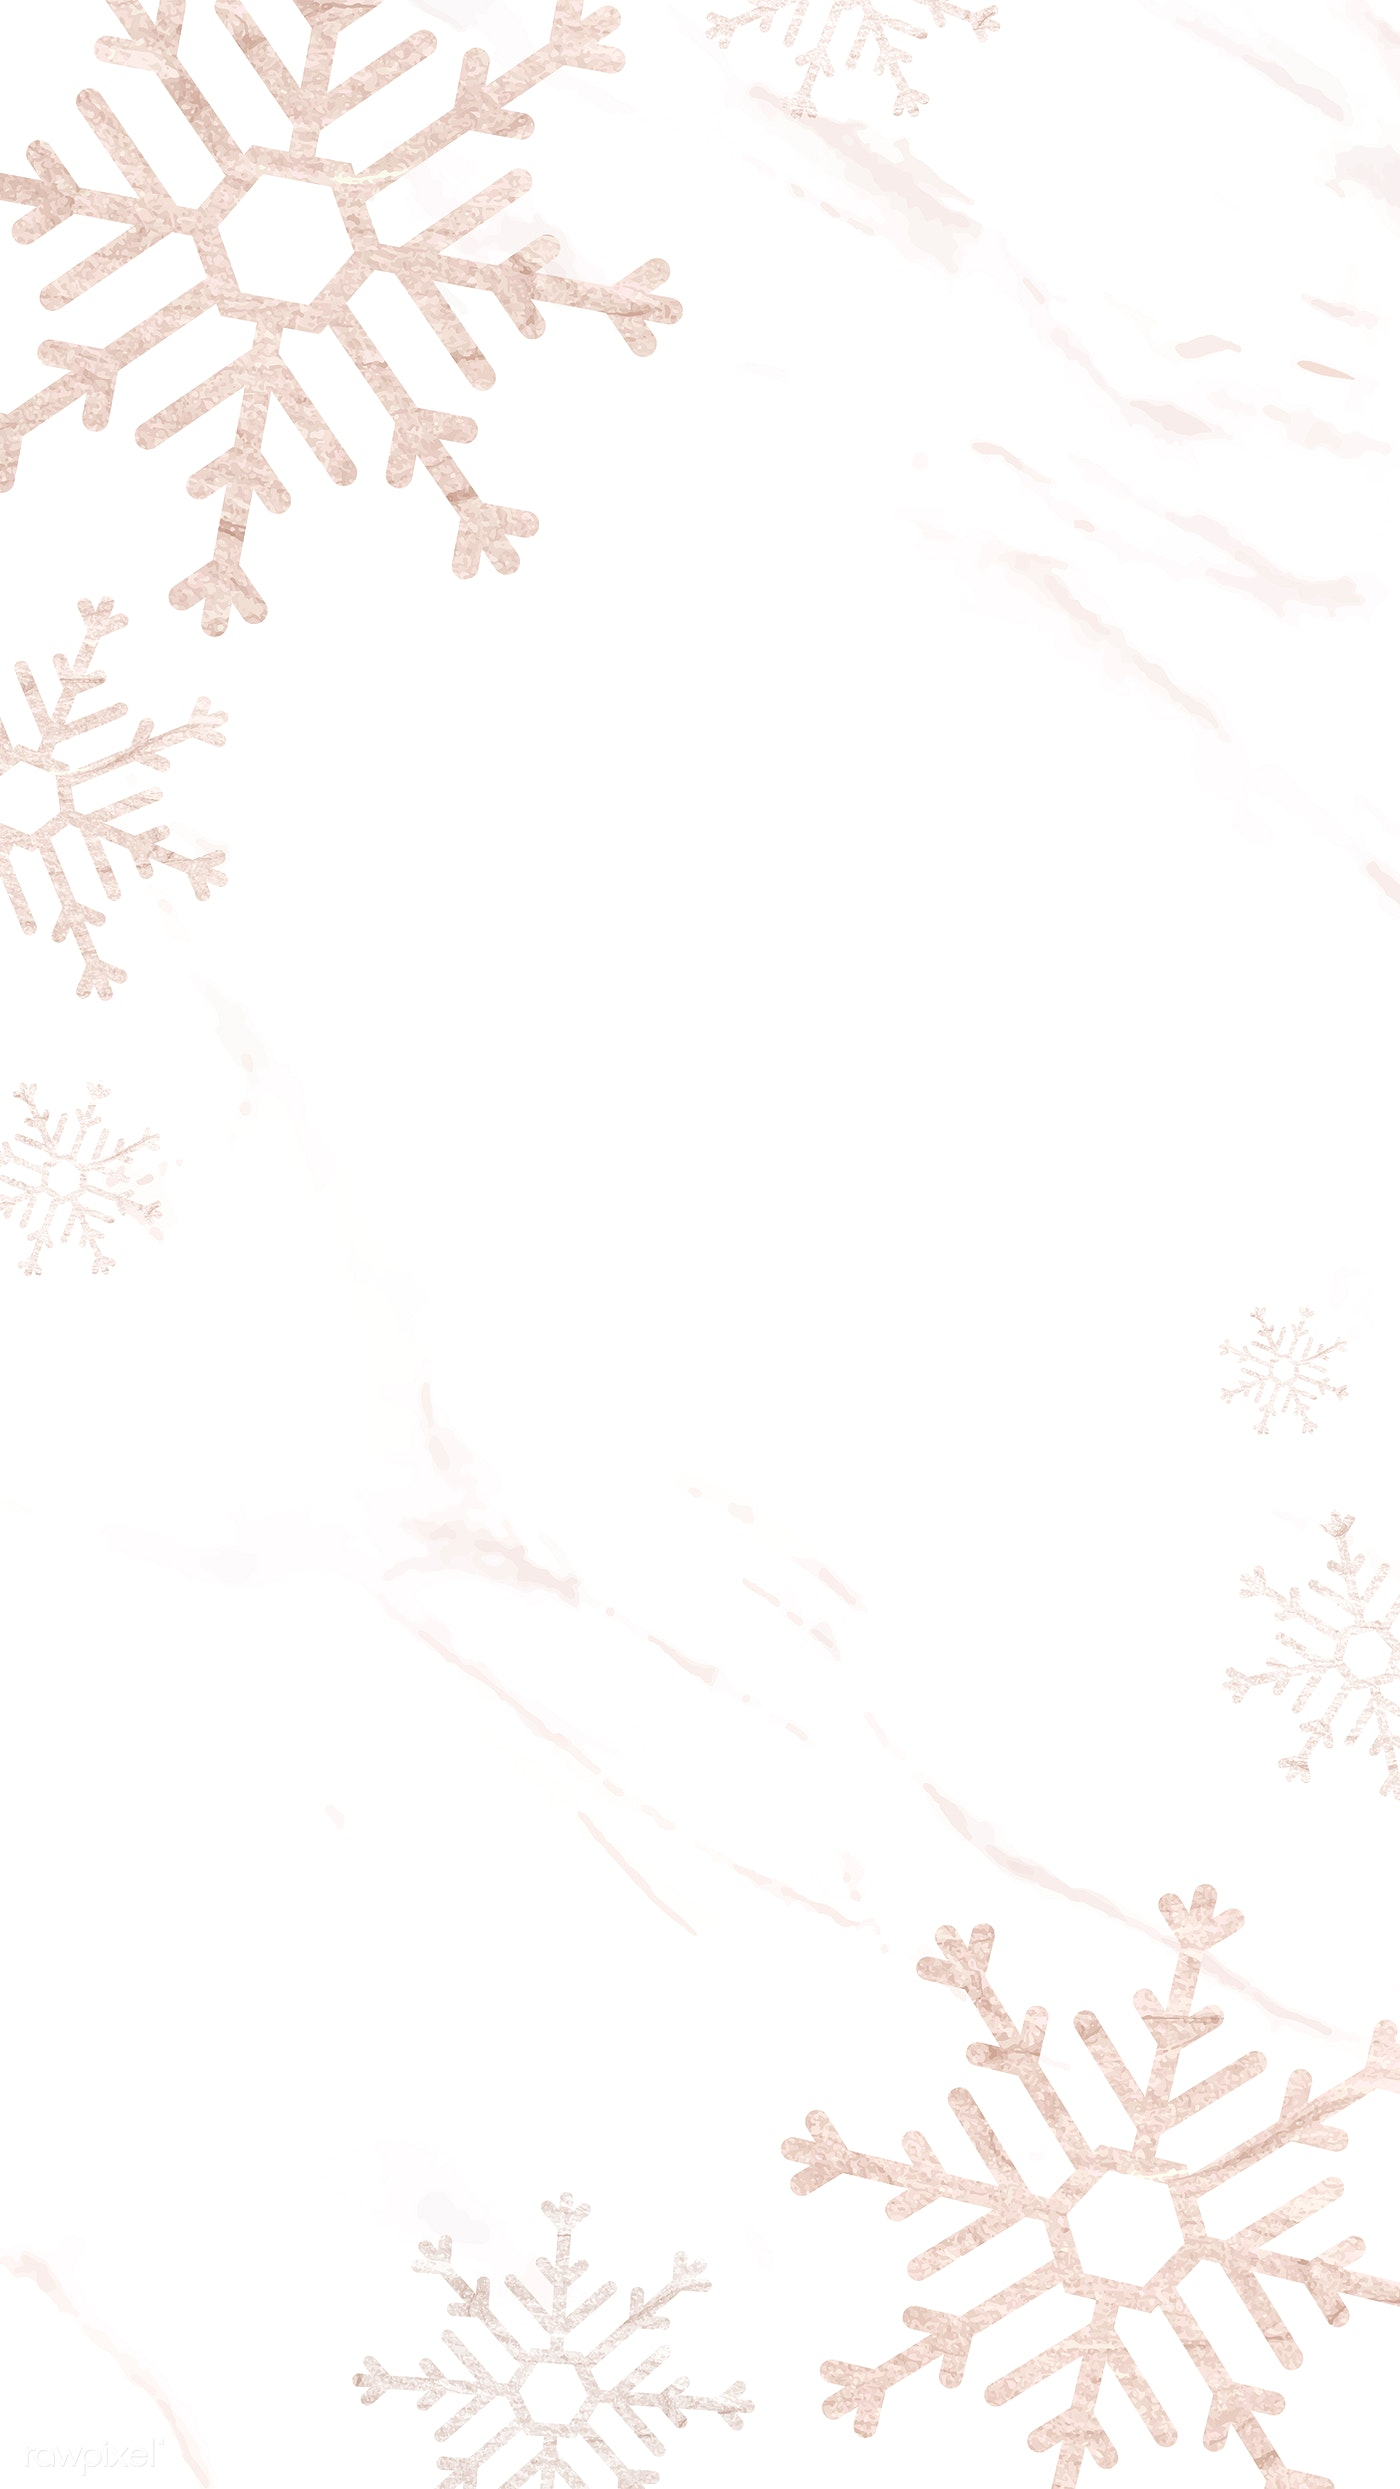 Download Premium Vector Of Snowflakes Patterned On White Mobile Phone